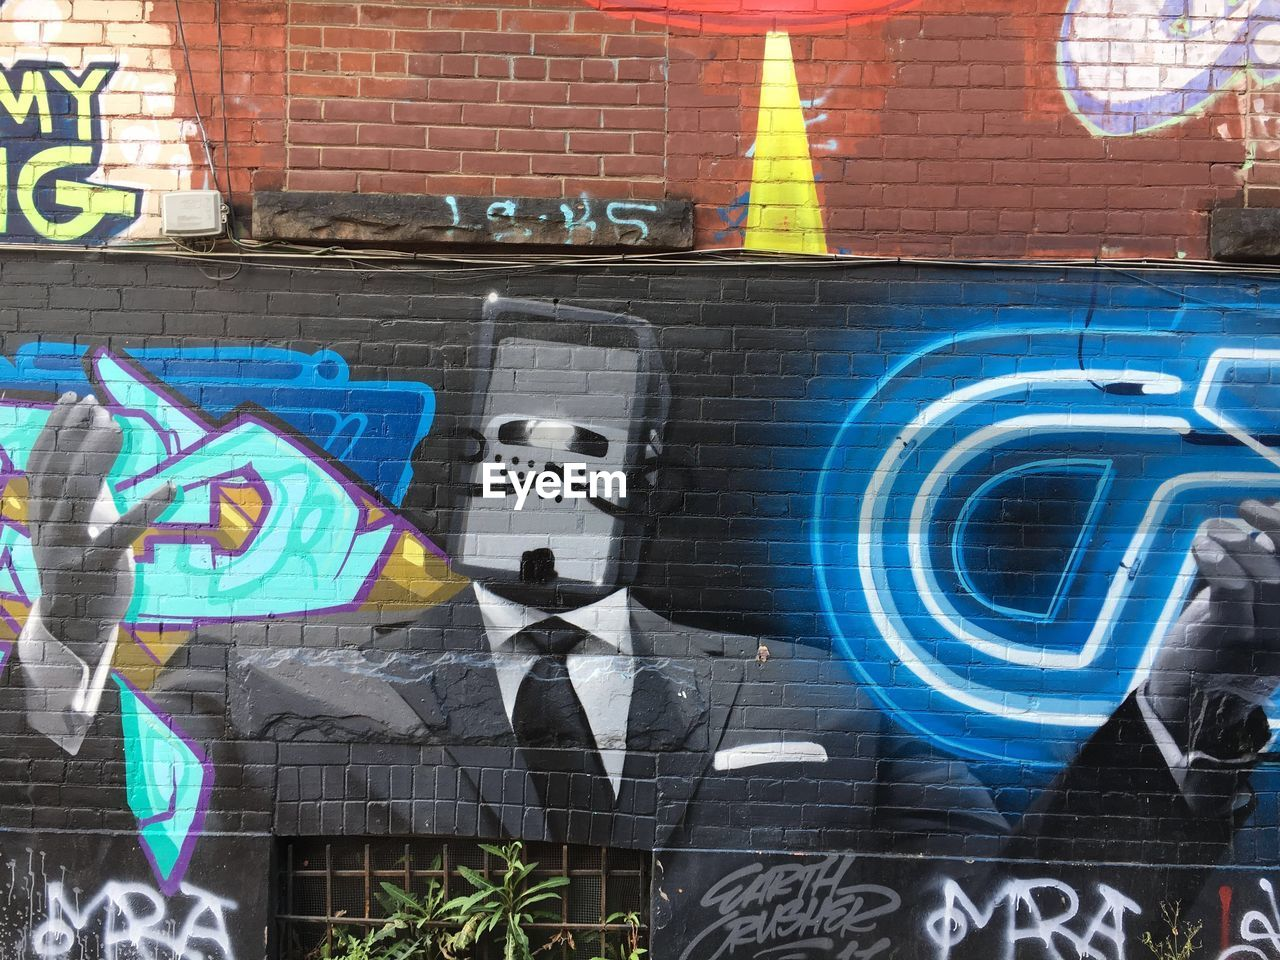 text, creativity, graffiti, western script, human representation, no people, wall - building feature, art and craft, brick wall, brick, wall, representation, architecture, communication, multi colored, day, city, built structure, building exterior, street art, outdoors, marketing, mural